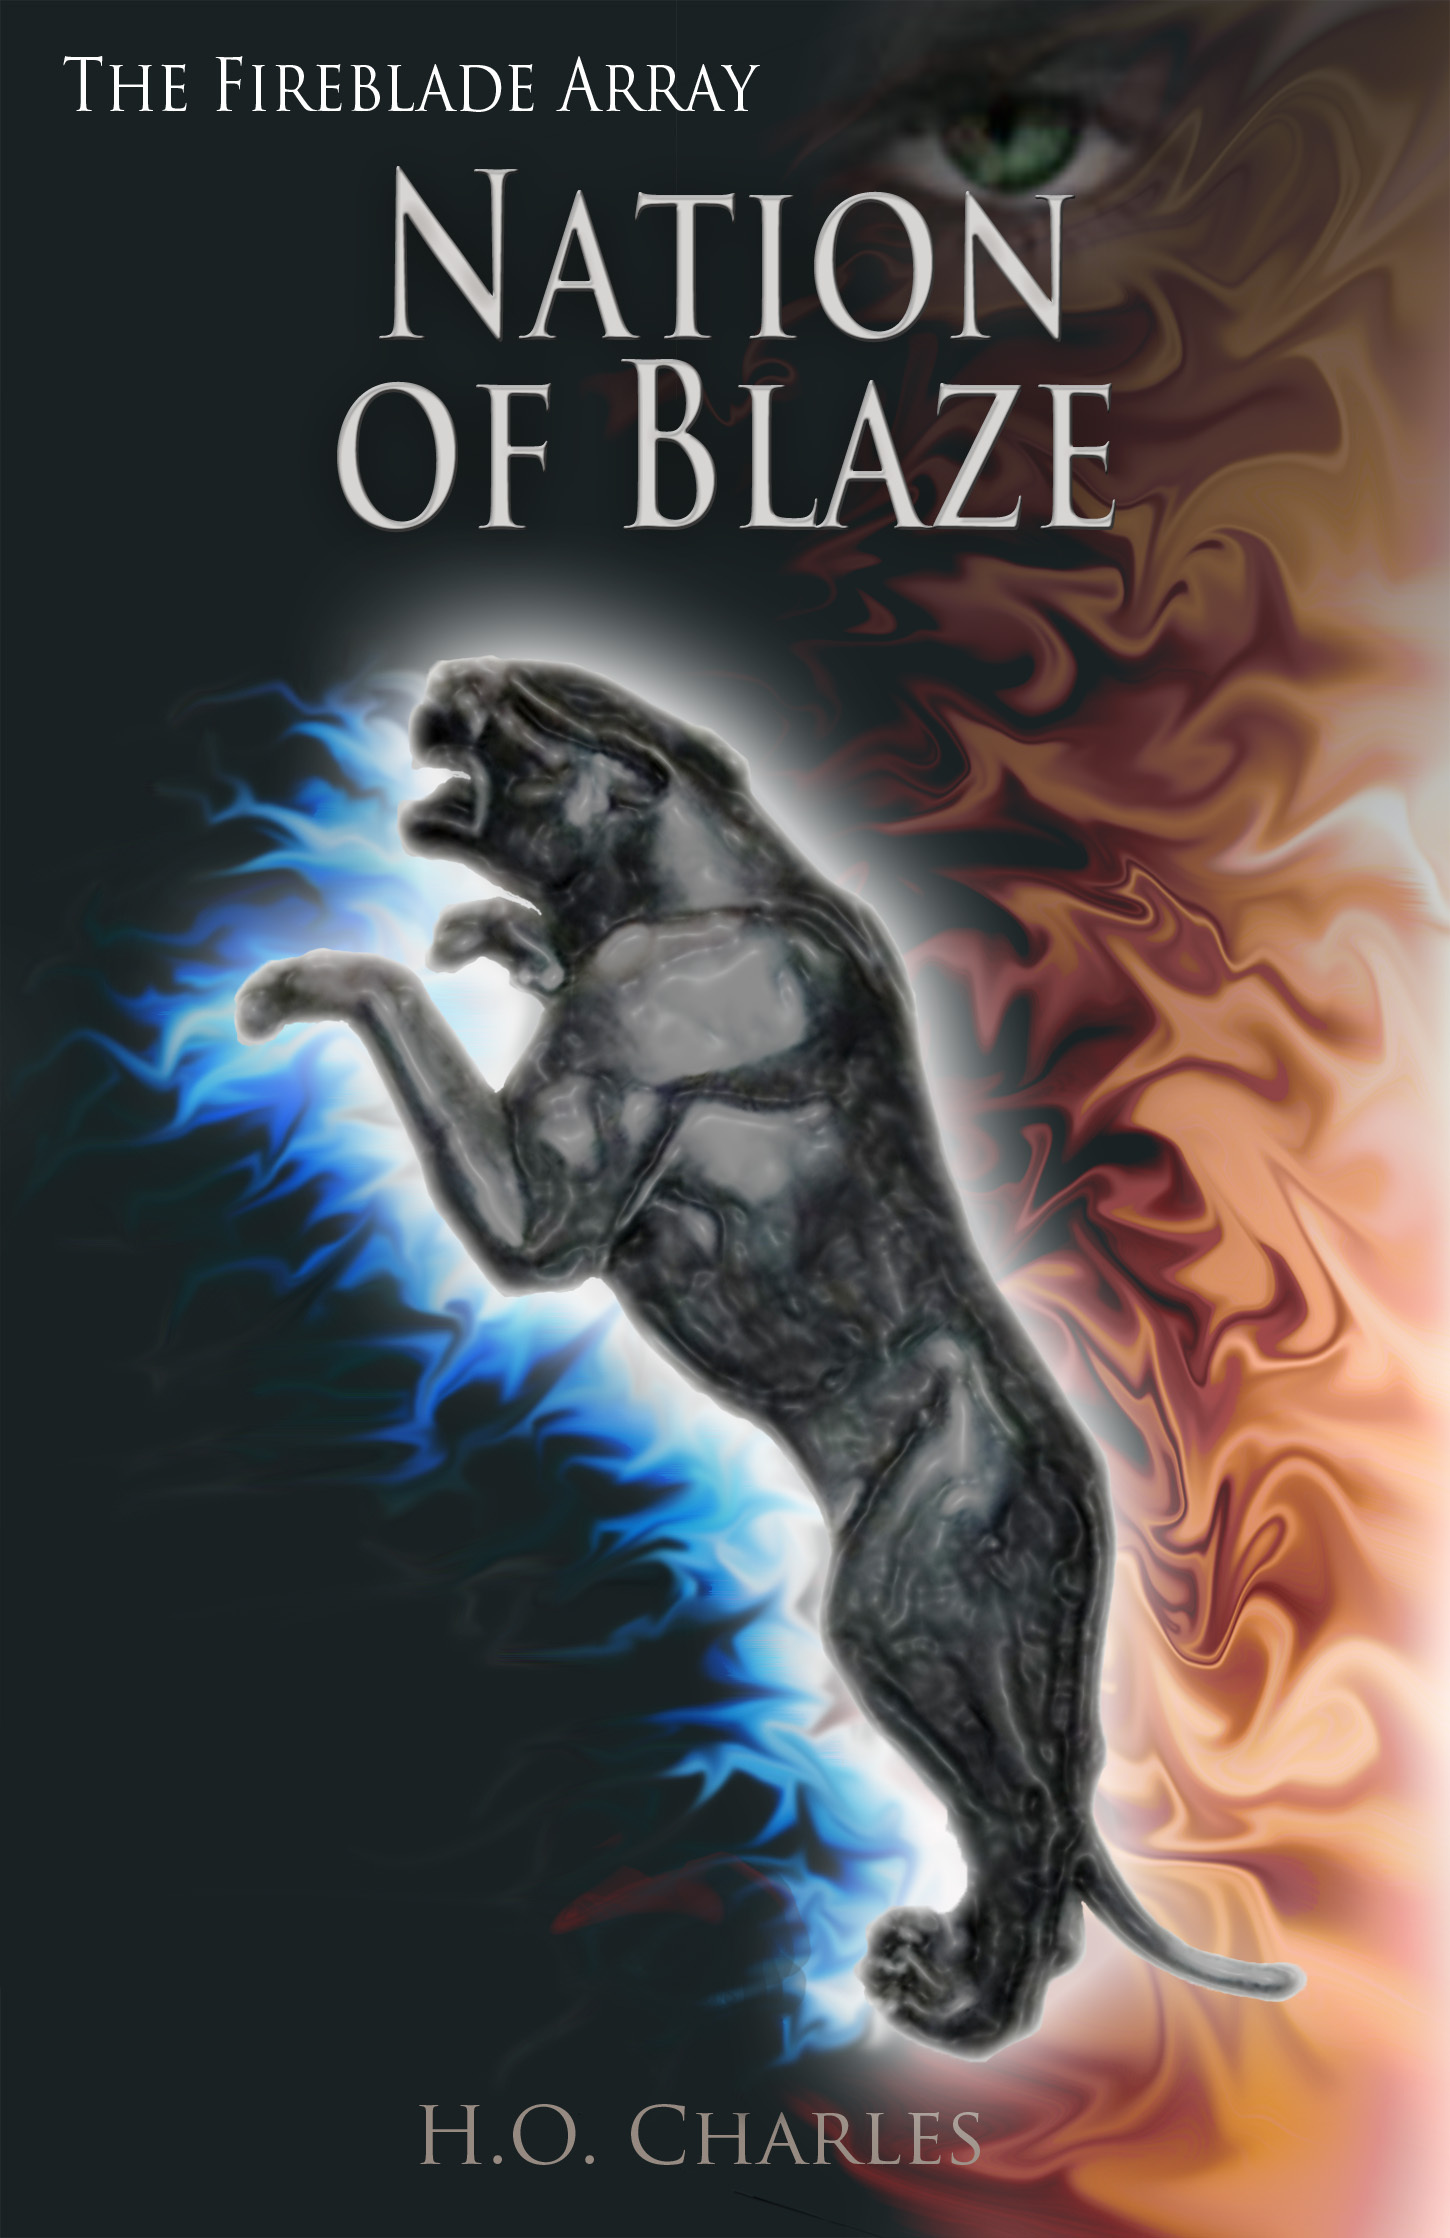 Nation of Blaze (Volume 2 of The Fireblade Array)